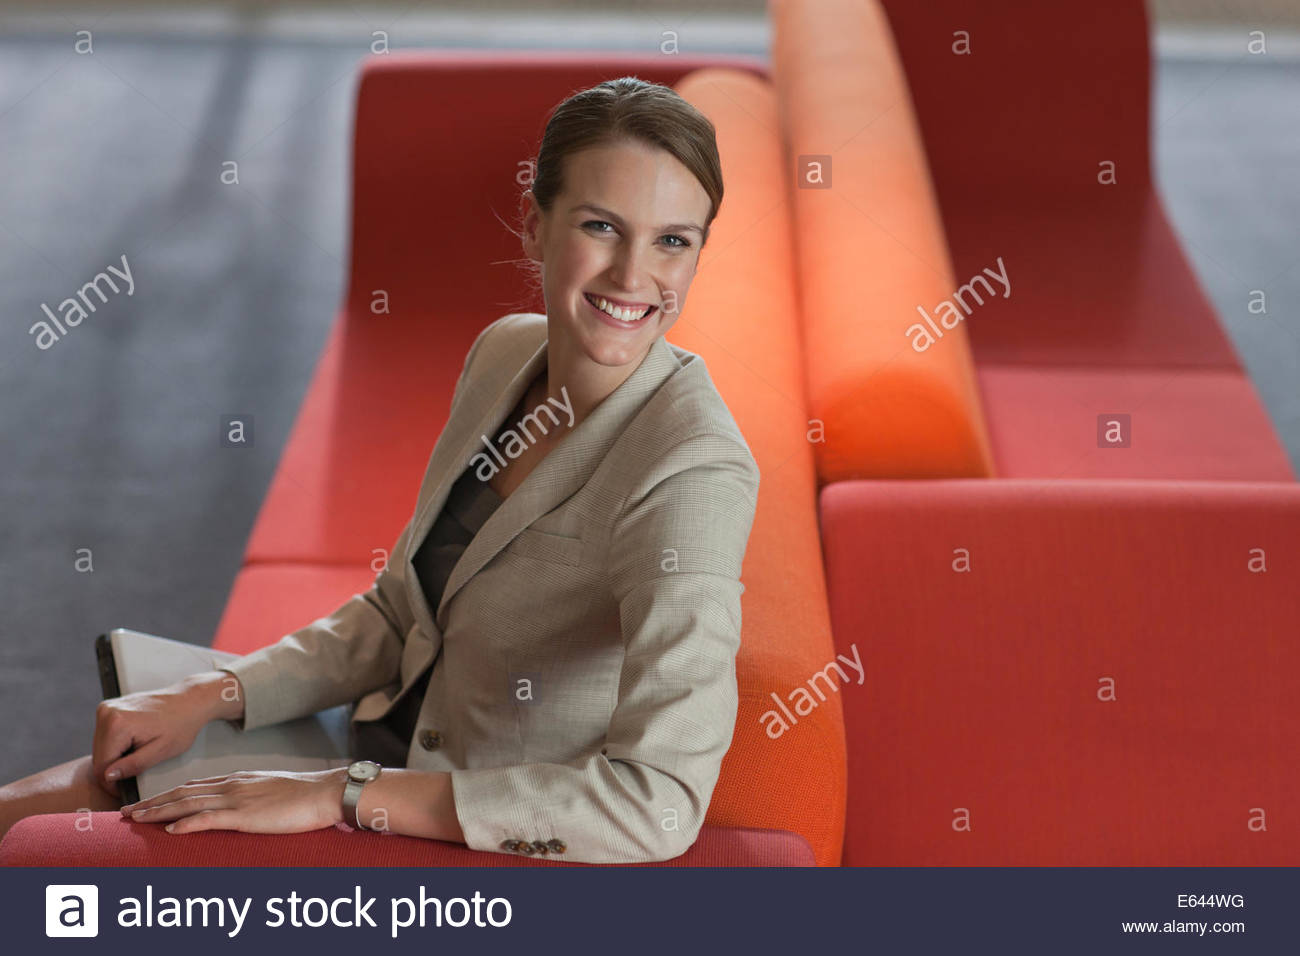 Businesswoman with laptop en zone d'attente Photo Stock